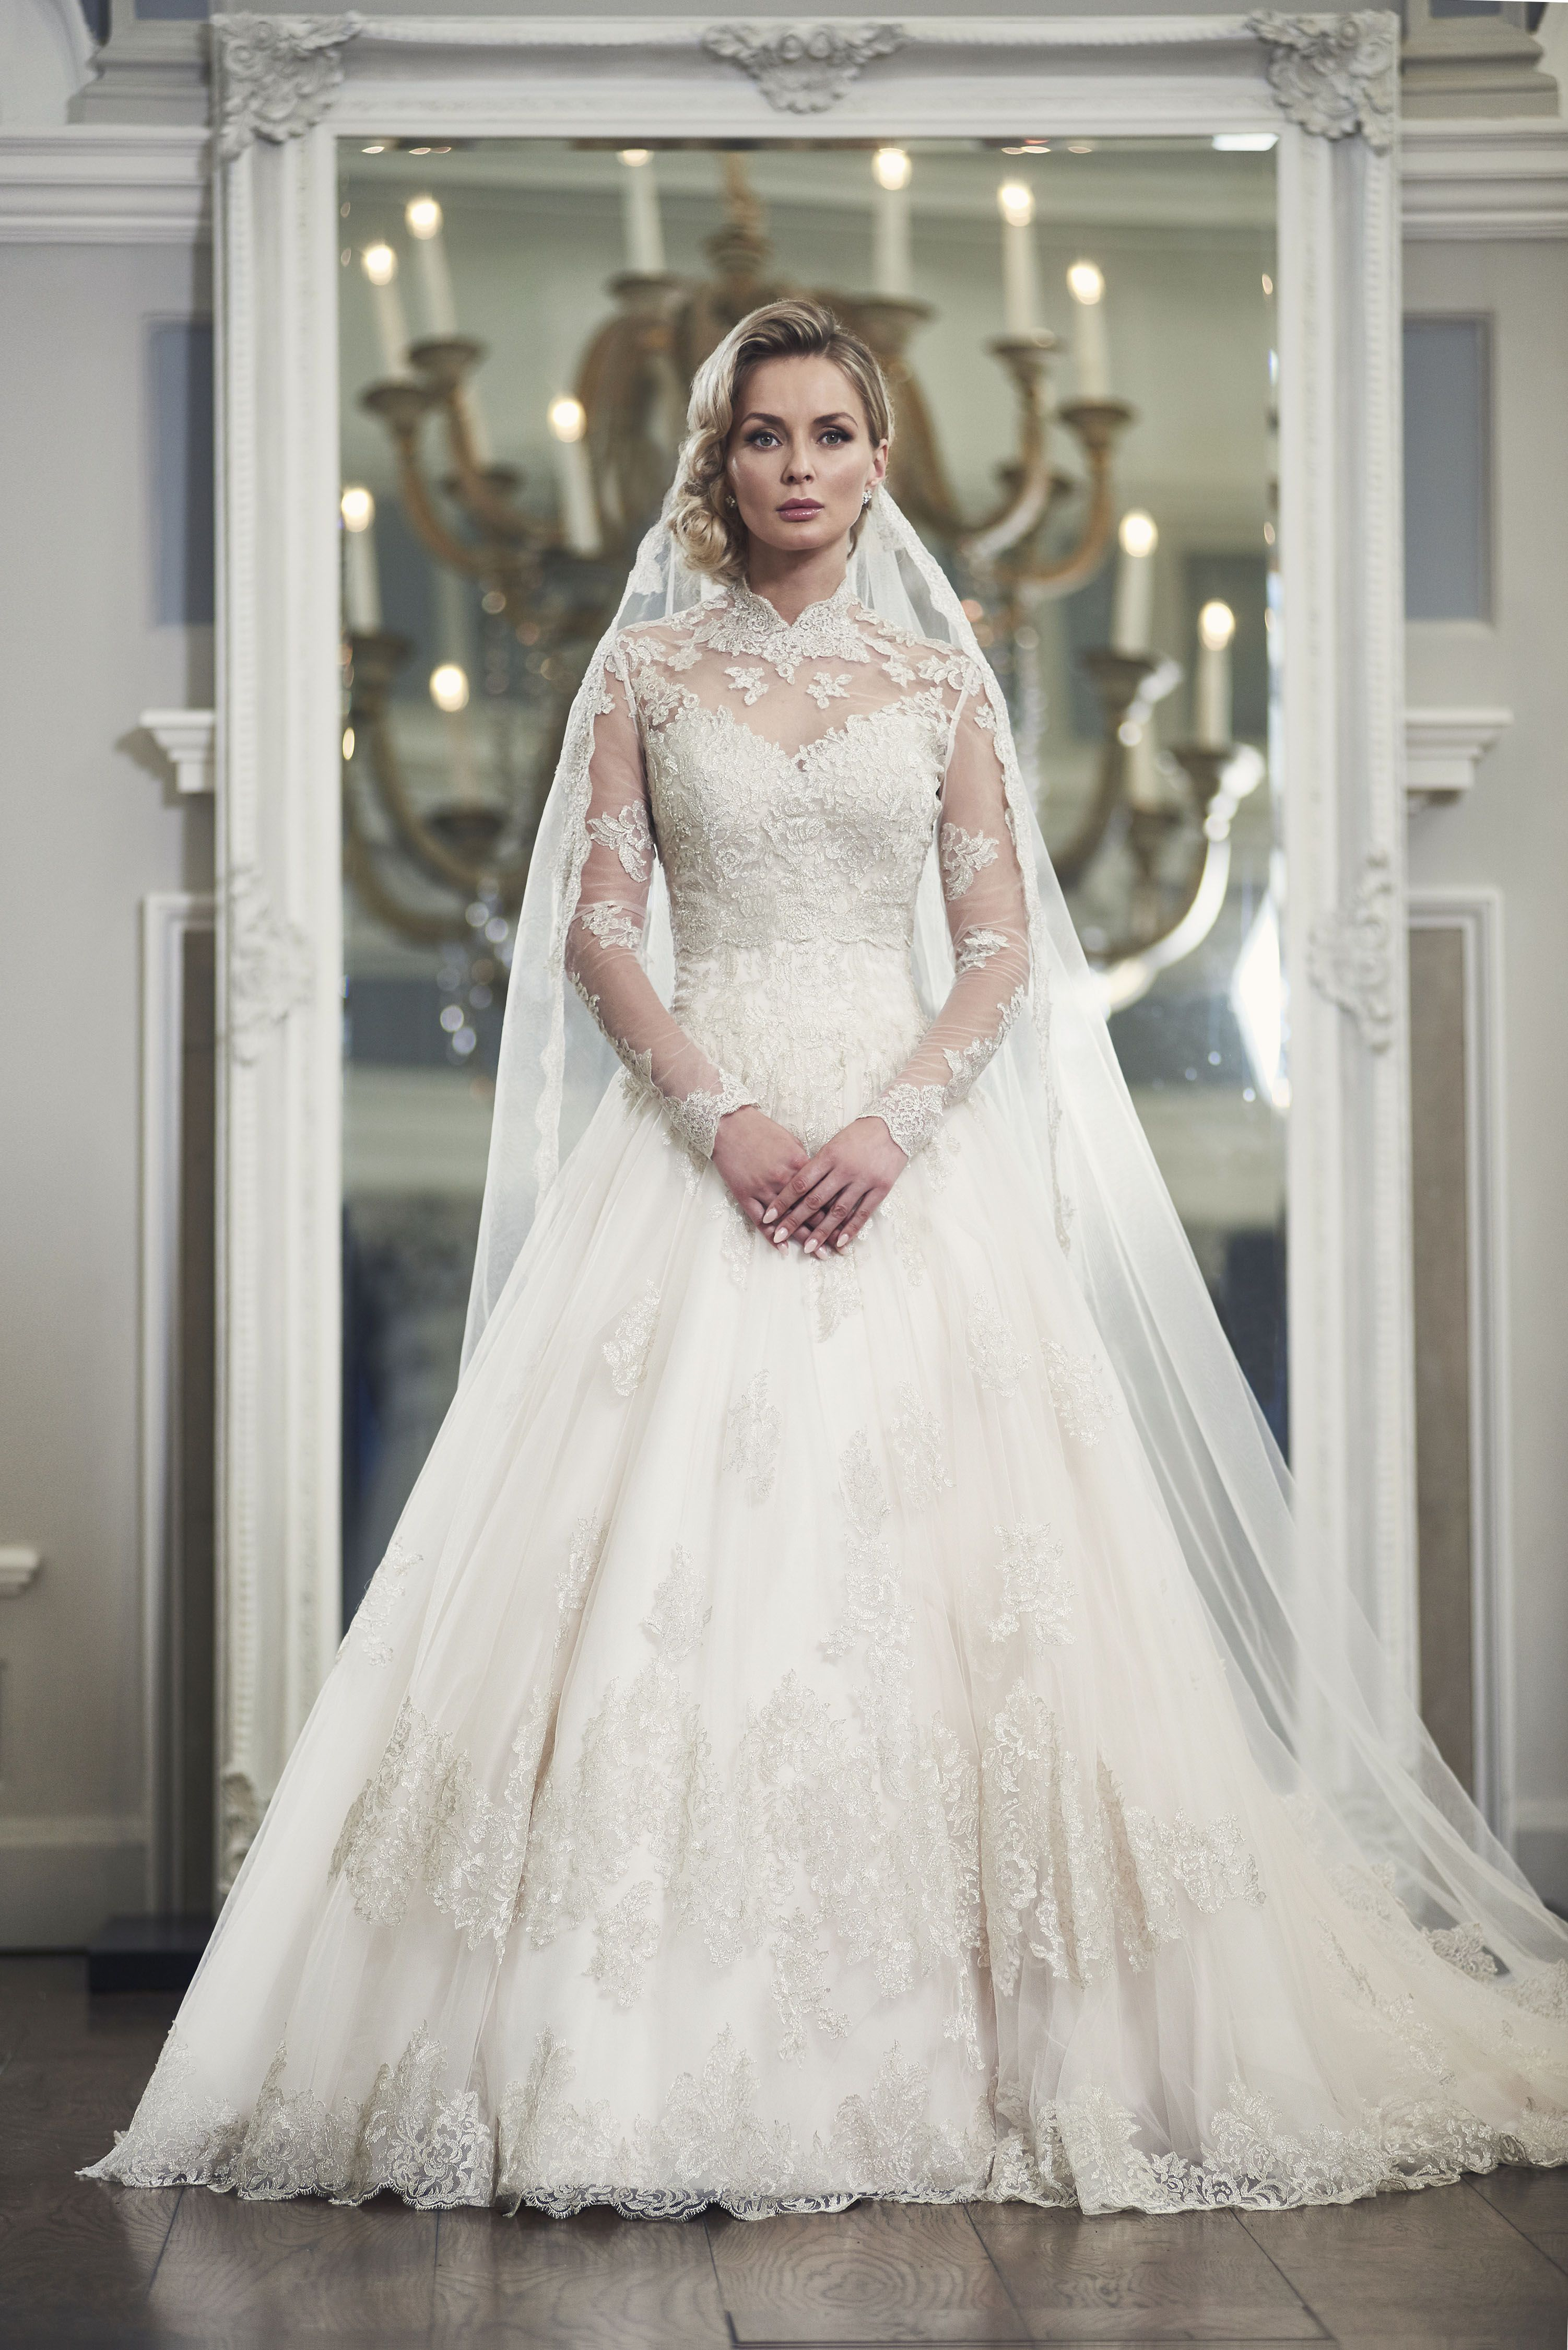 fca237c1ef Grace kelly inspired wedding dress, lace full skirt with lace bolero and  long sleeves by Ian Stuart. #fairytalewedding Available at Devlin Bridal  Couture.